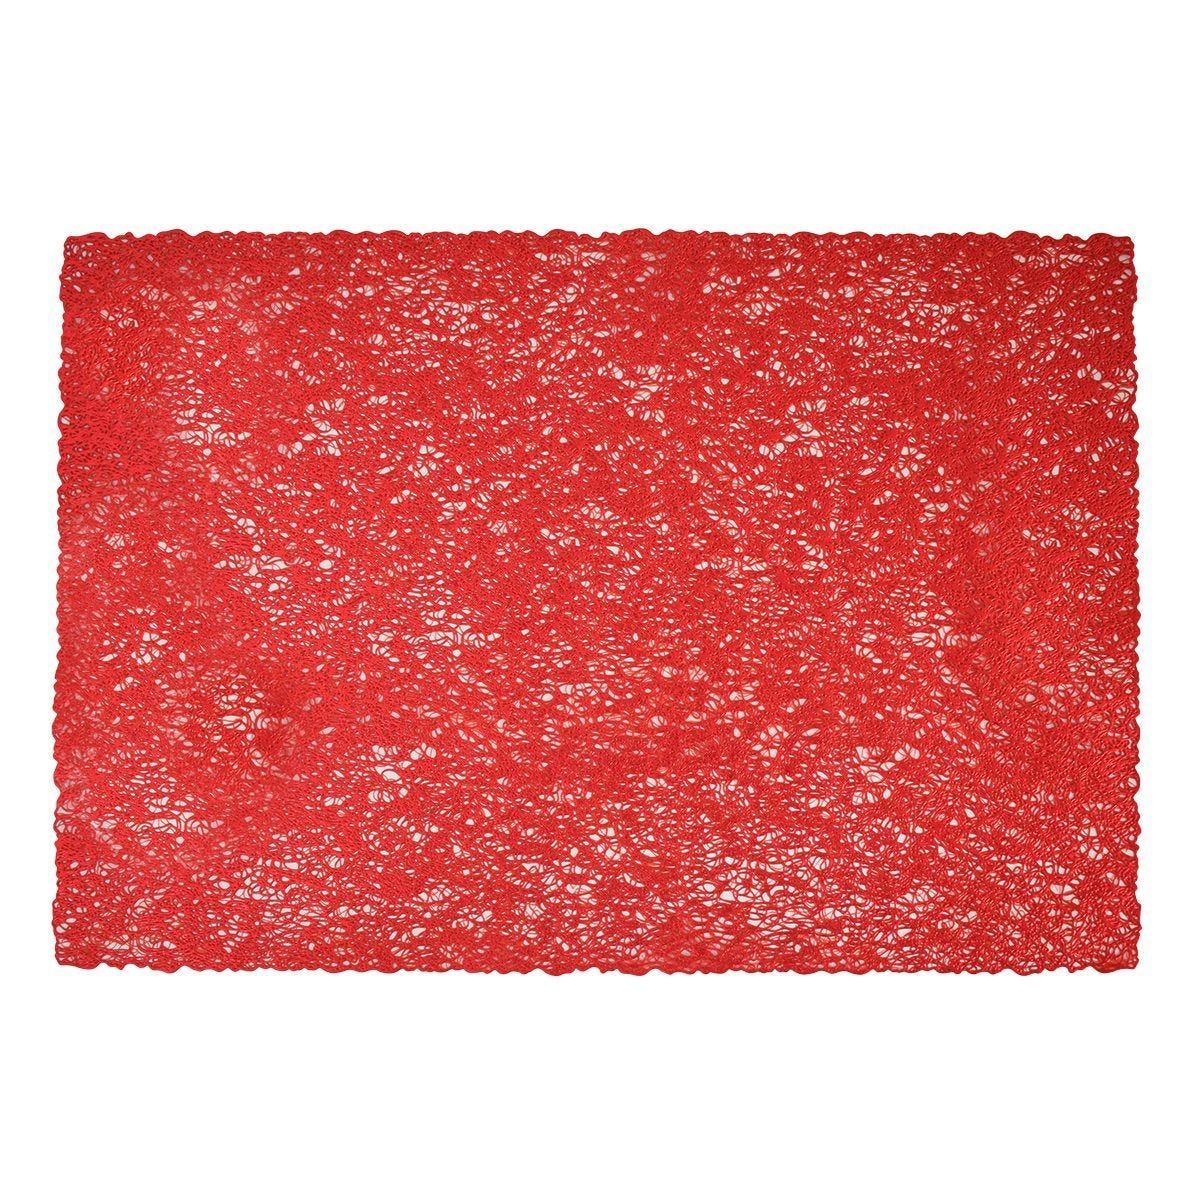 Woven Placemat - Red